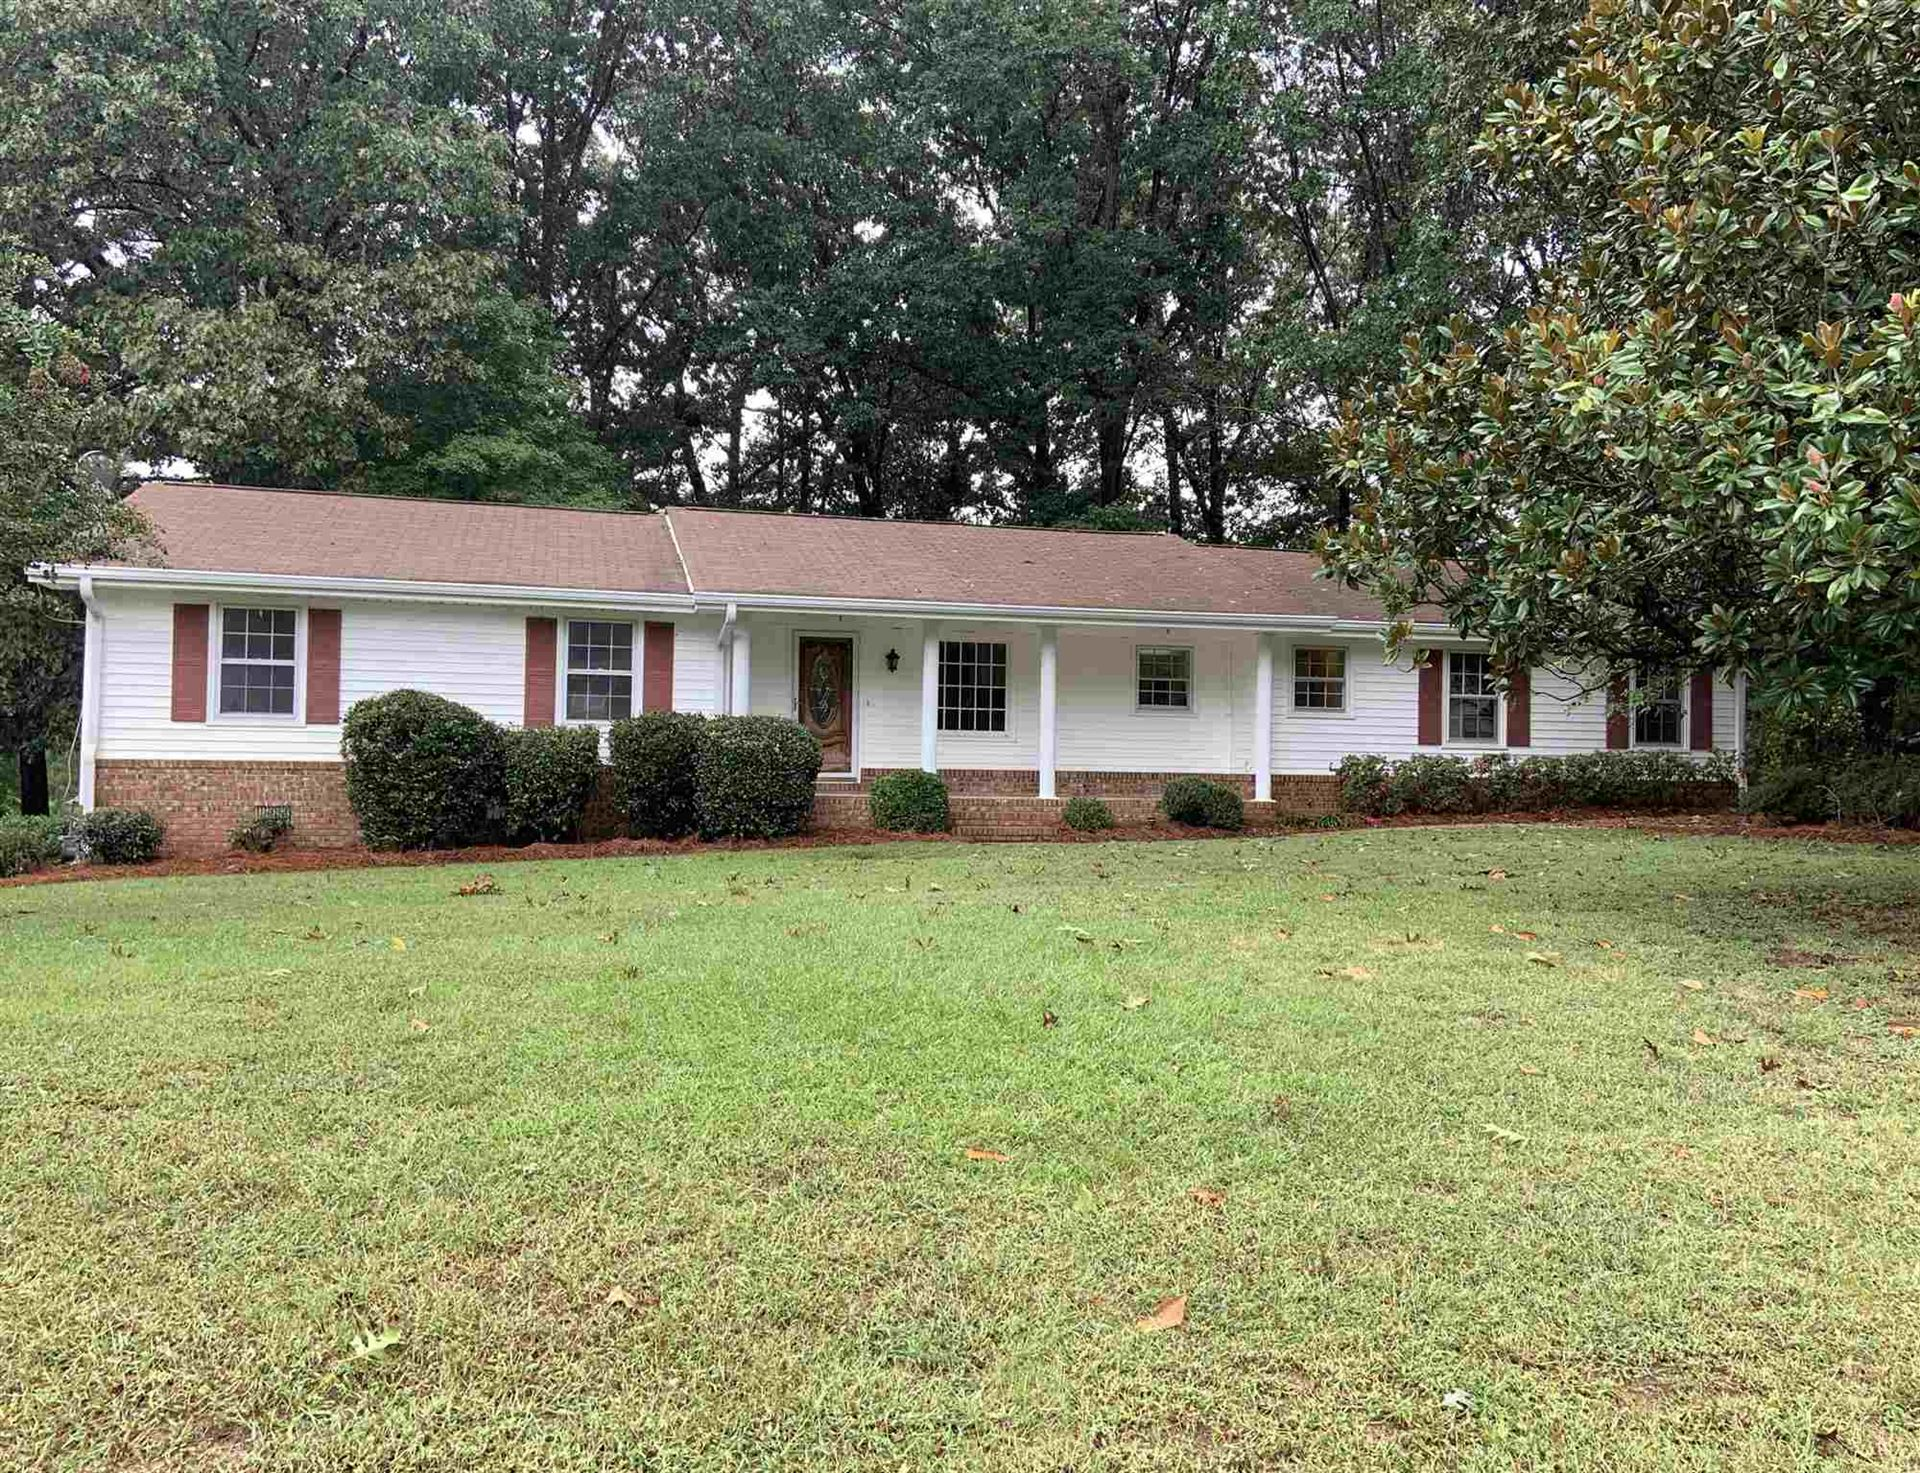 2535 Highland Golf Course Dr, Conyers, GA 30013 - #: 8859862